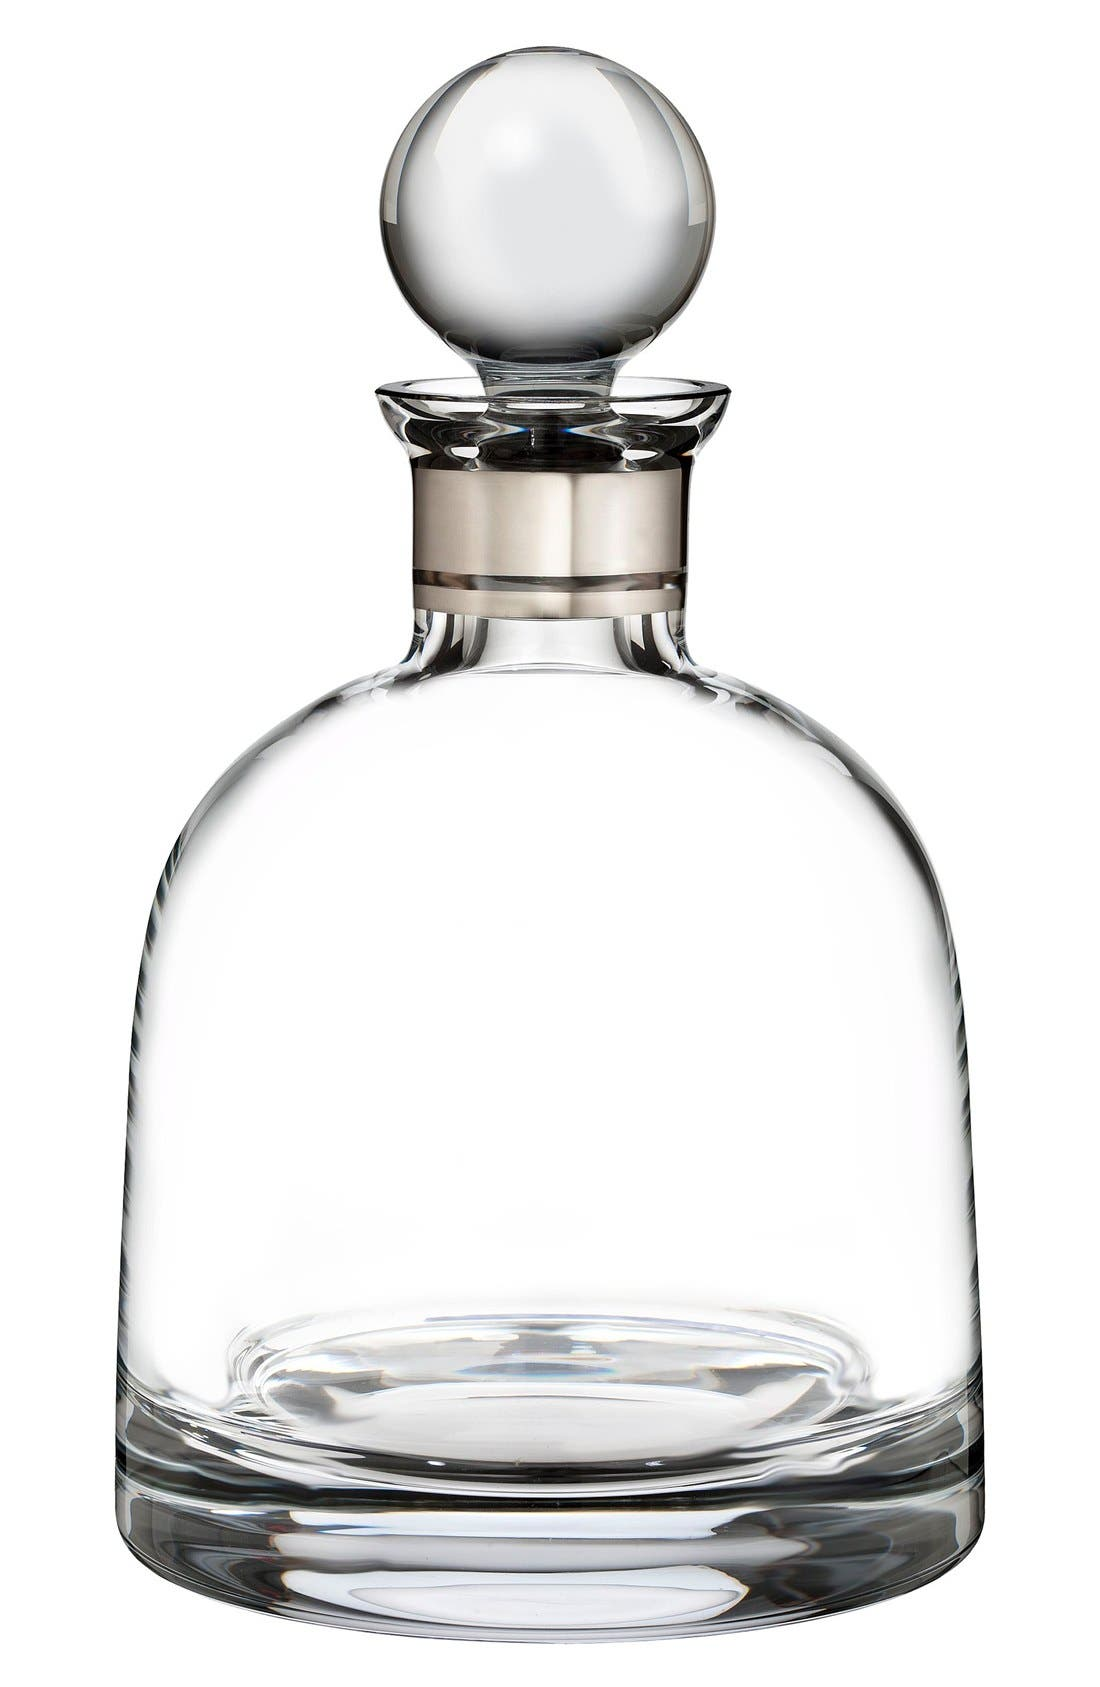 Main Image - Waterford 'Elegance' Fine Crystal Decanter & Stopper